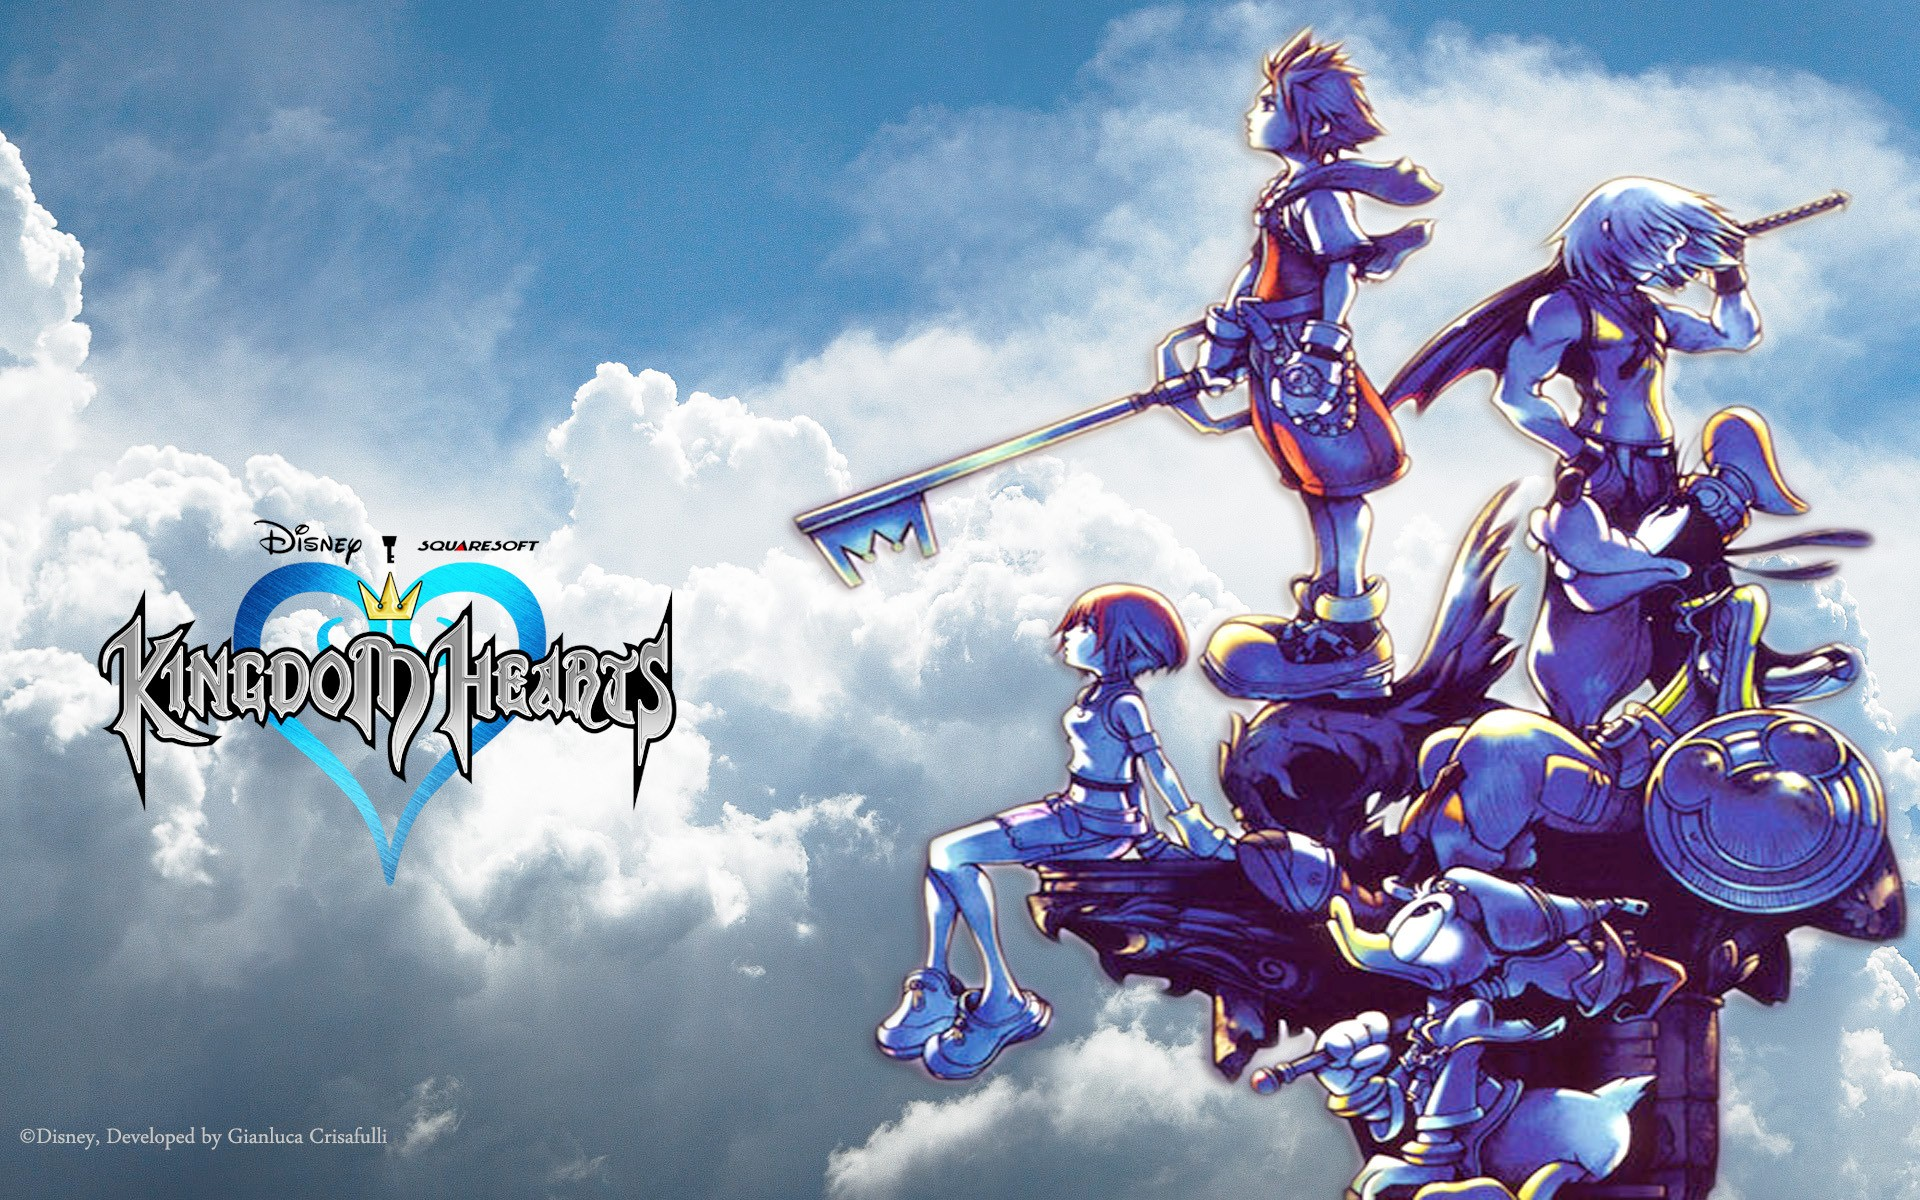 Kingdom Hearts 3 Wallpaper Download Free Cool Hd Backgrounds